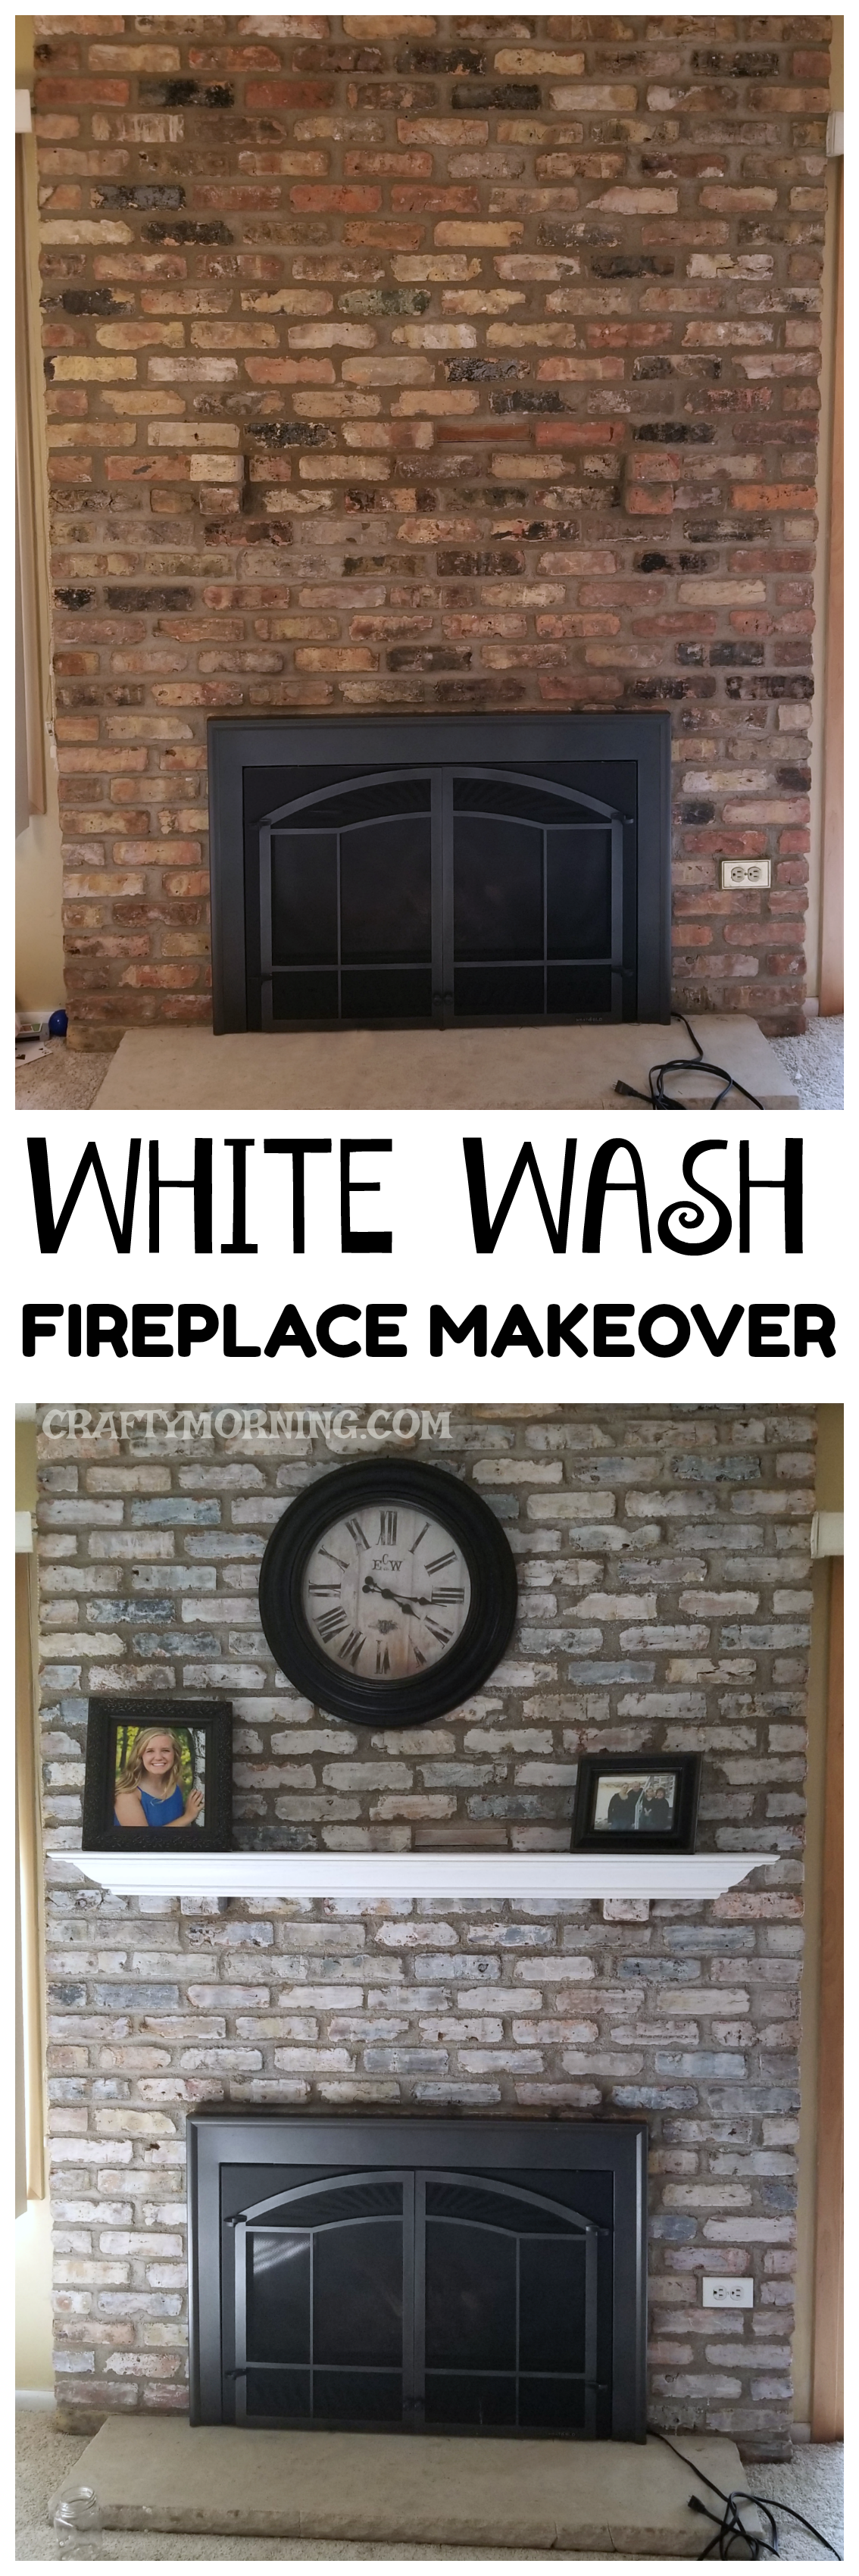 How to white wash a brick fireplace beautiful makeover on a budget